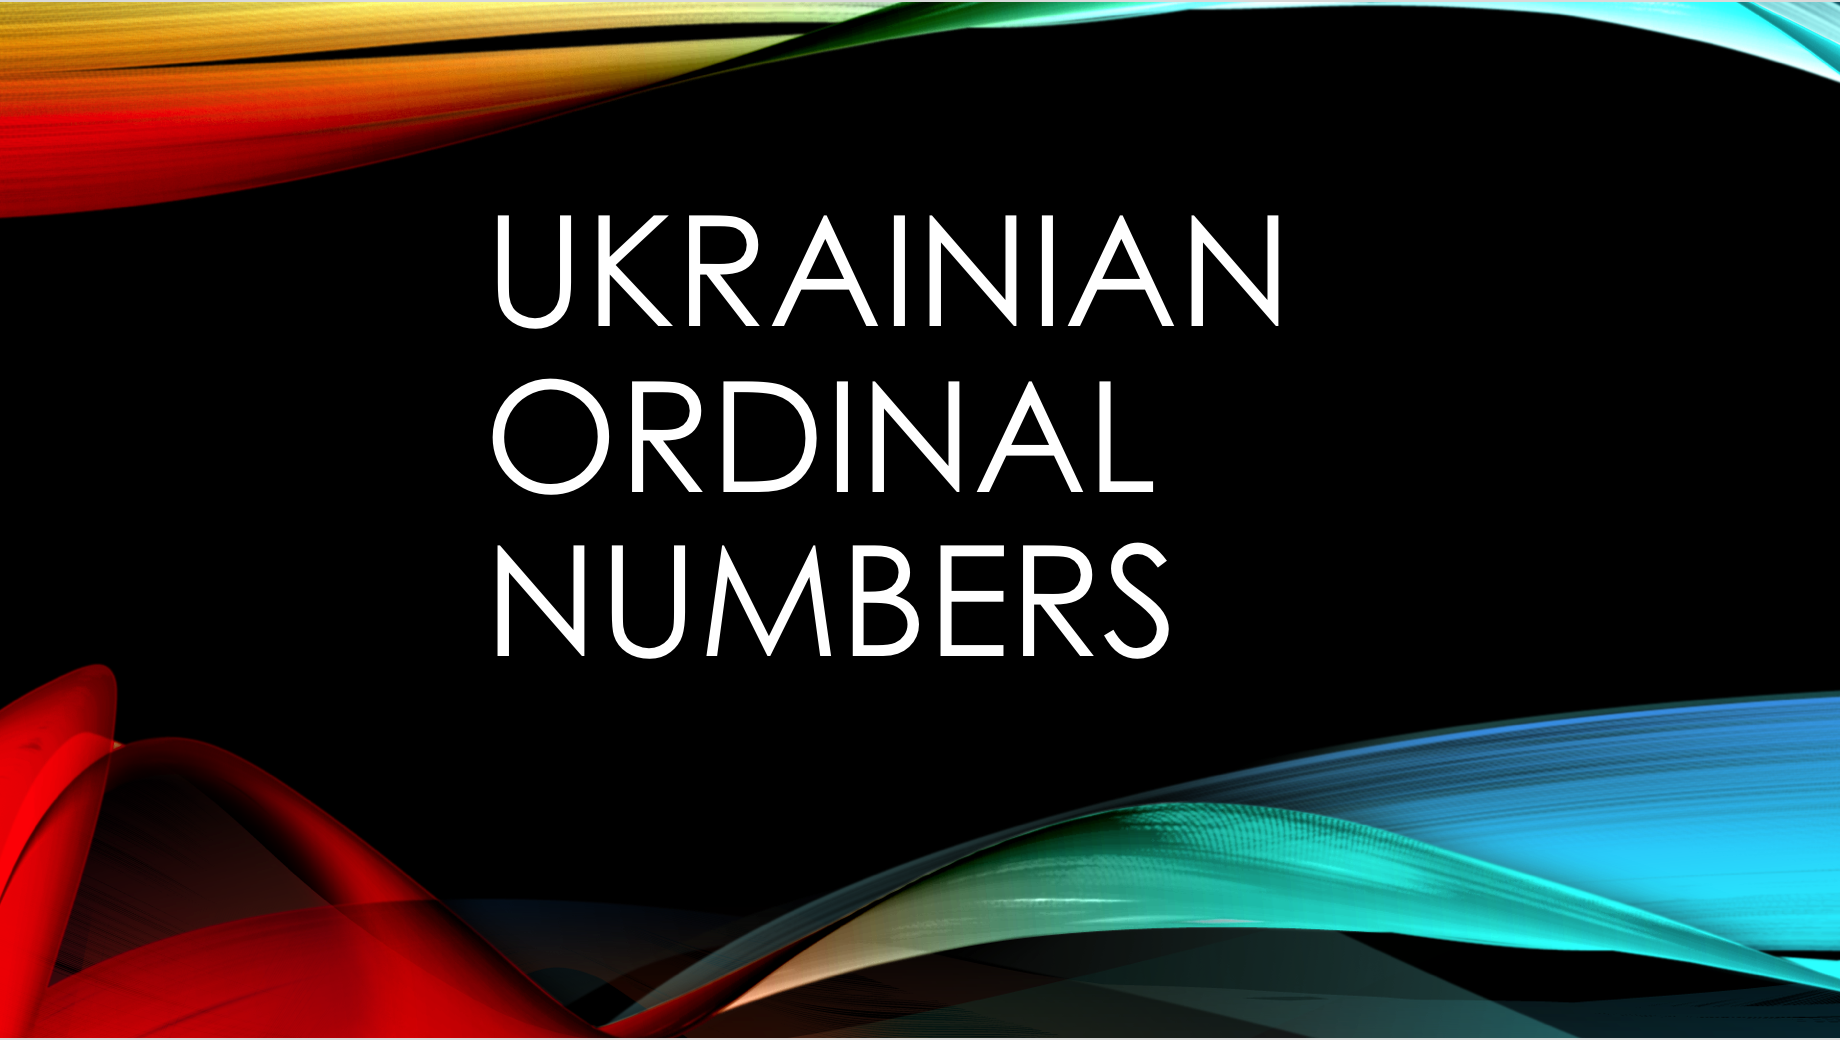 Ukrainian Ordinal Numbers